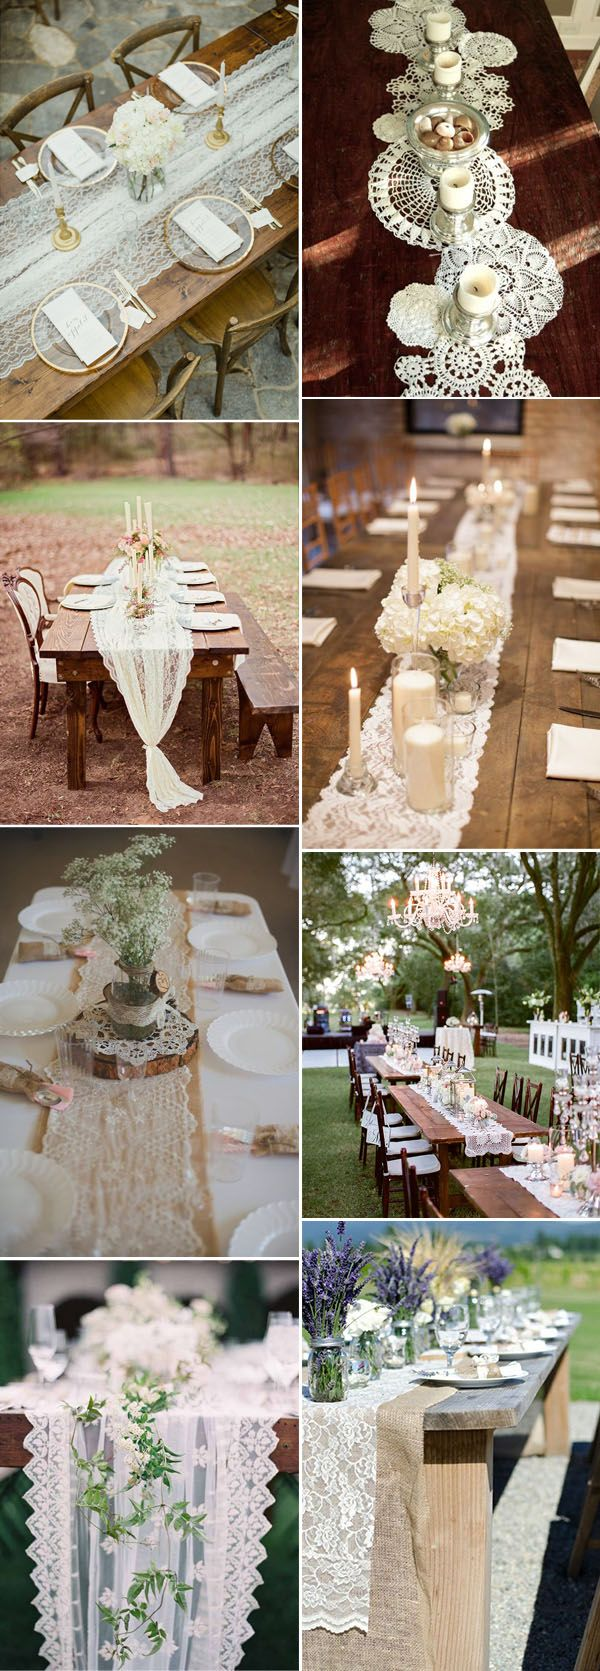 Lace Table Runners | Lace Burlap Table Runner | Table Runners For Weddings